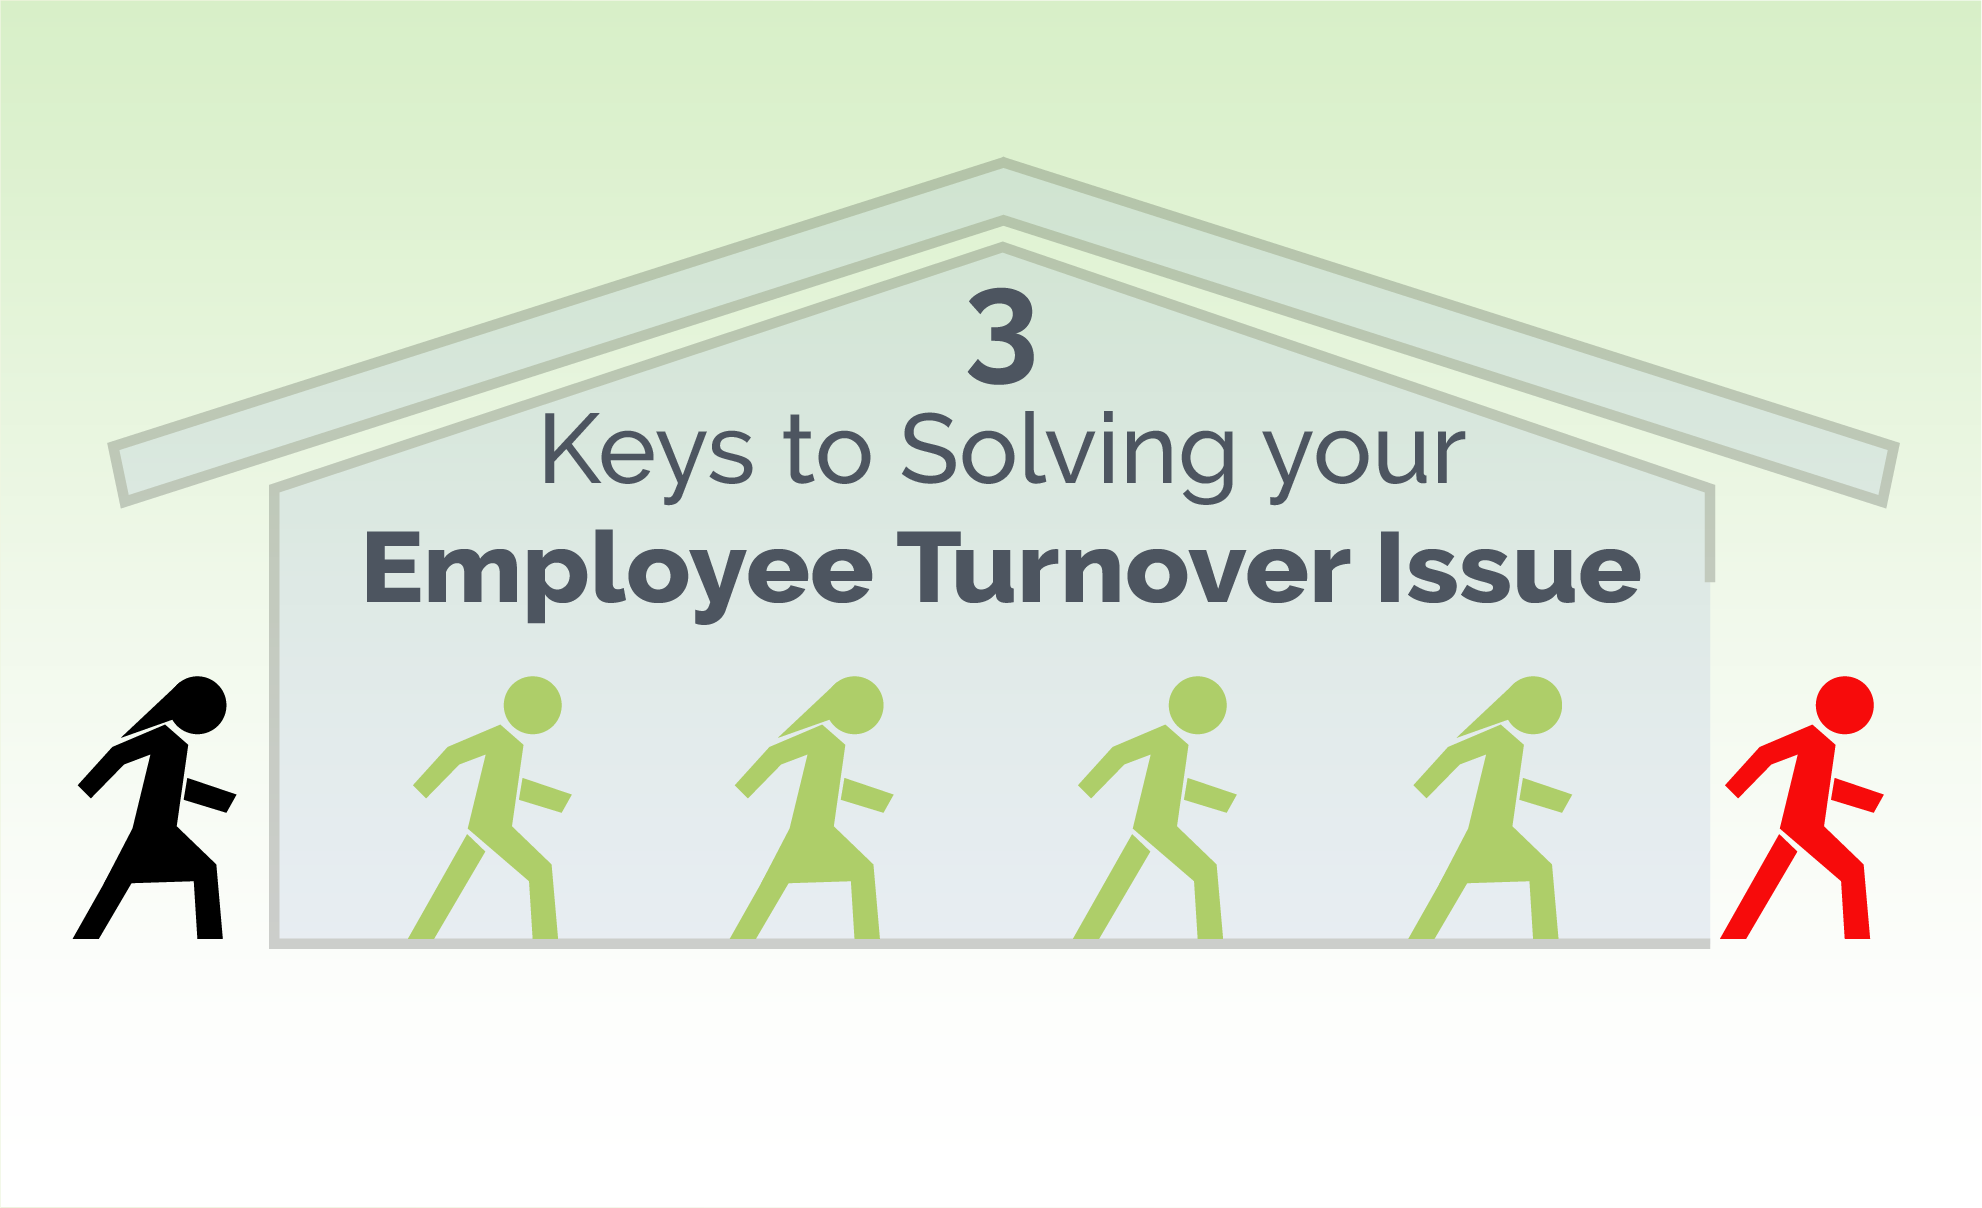 3 Keys to Solving Your Employee Turnover Issue